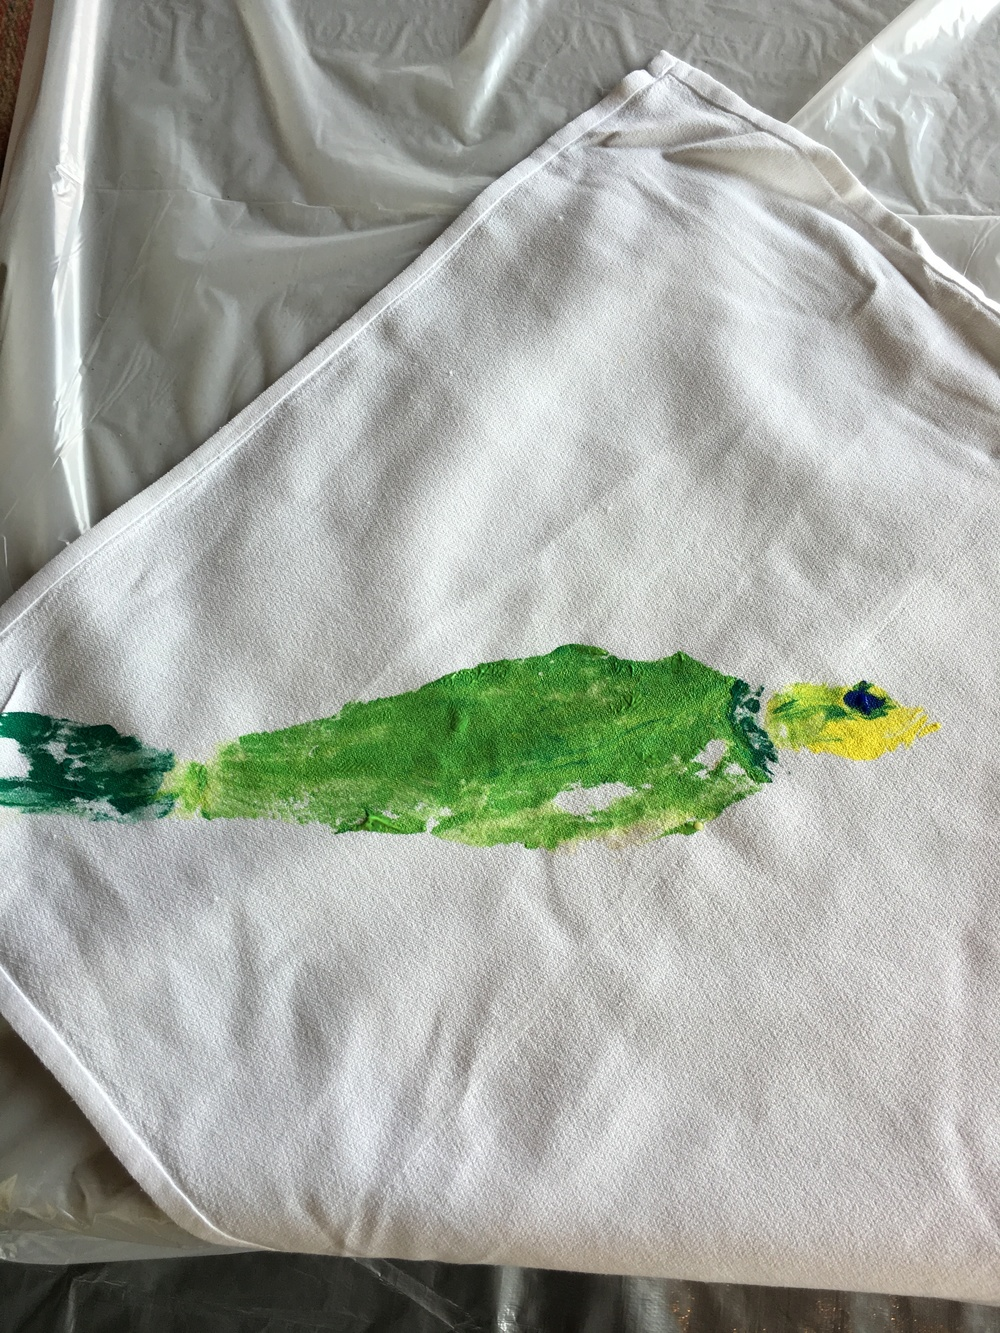 fishpainted_2016.JPG